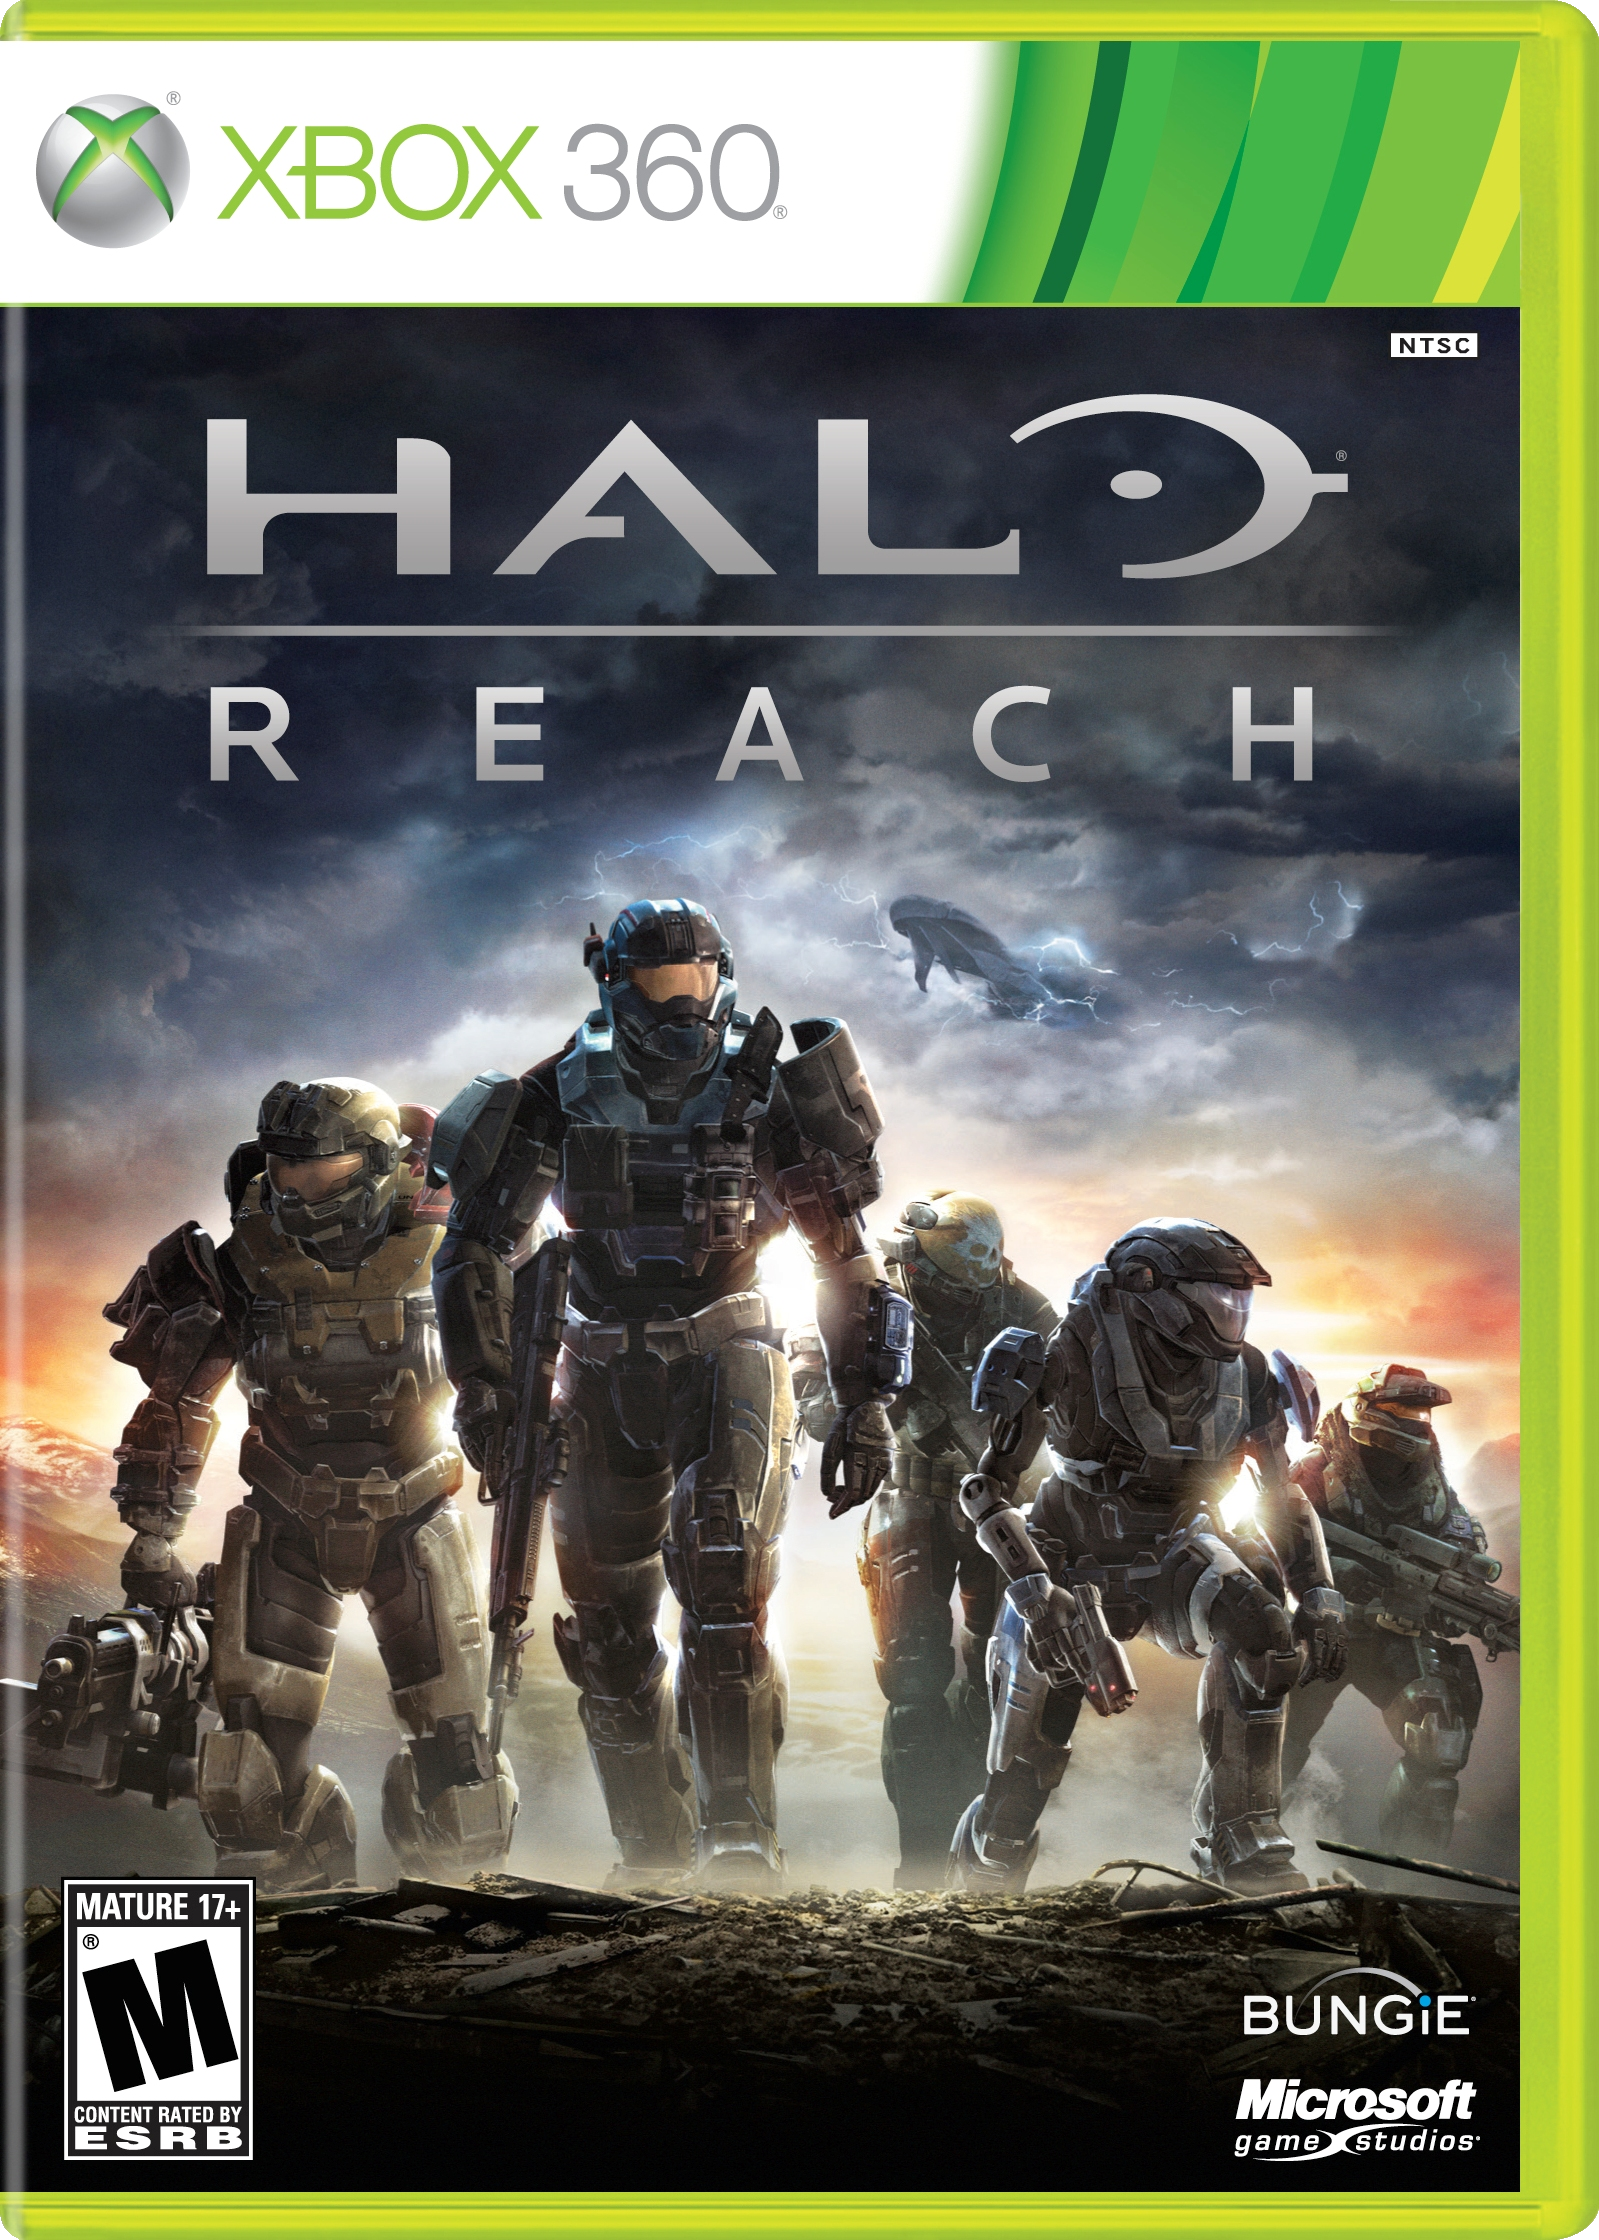 Halo: Reach | Halo Alpha | FANDOM powered by Wikia